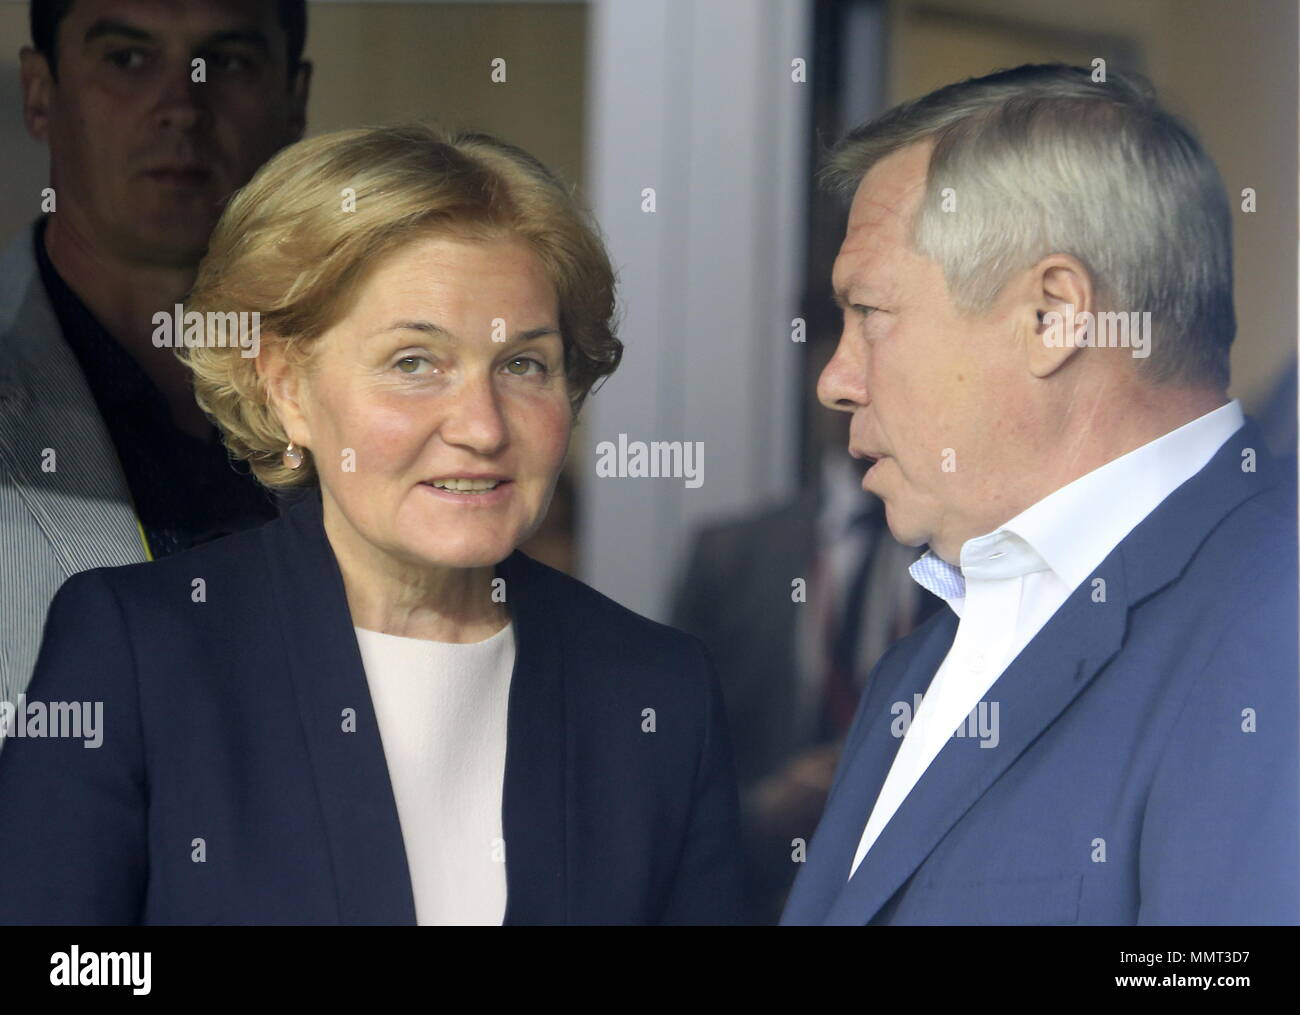 Rostov On Don, Russia. 13th May, 2018. ROSTOV-ON-DON, RUSSIA - MAY 13, 2018: Russia's acting Deputy Prime Minister Olga Golodets (L) and Rostov-on-Don Region Governor Vasily Golubev attend a ceremony to open Rostov Arena Stadium ahead of a 2017/2018 Russian Football Premier League Round 30 match between FC Rostov and FC Ural, the third trial for the venue to host ahead of the 2018 FIFA World Cup. Valery Matytsin/TASS Credit: ITAR-TASS News Agency/Alamy Live News Stock Photo